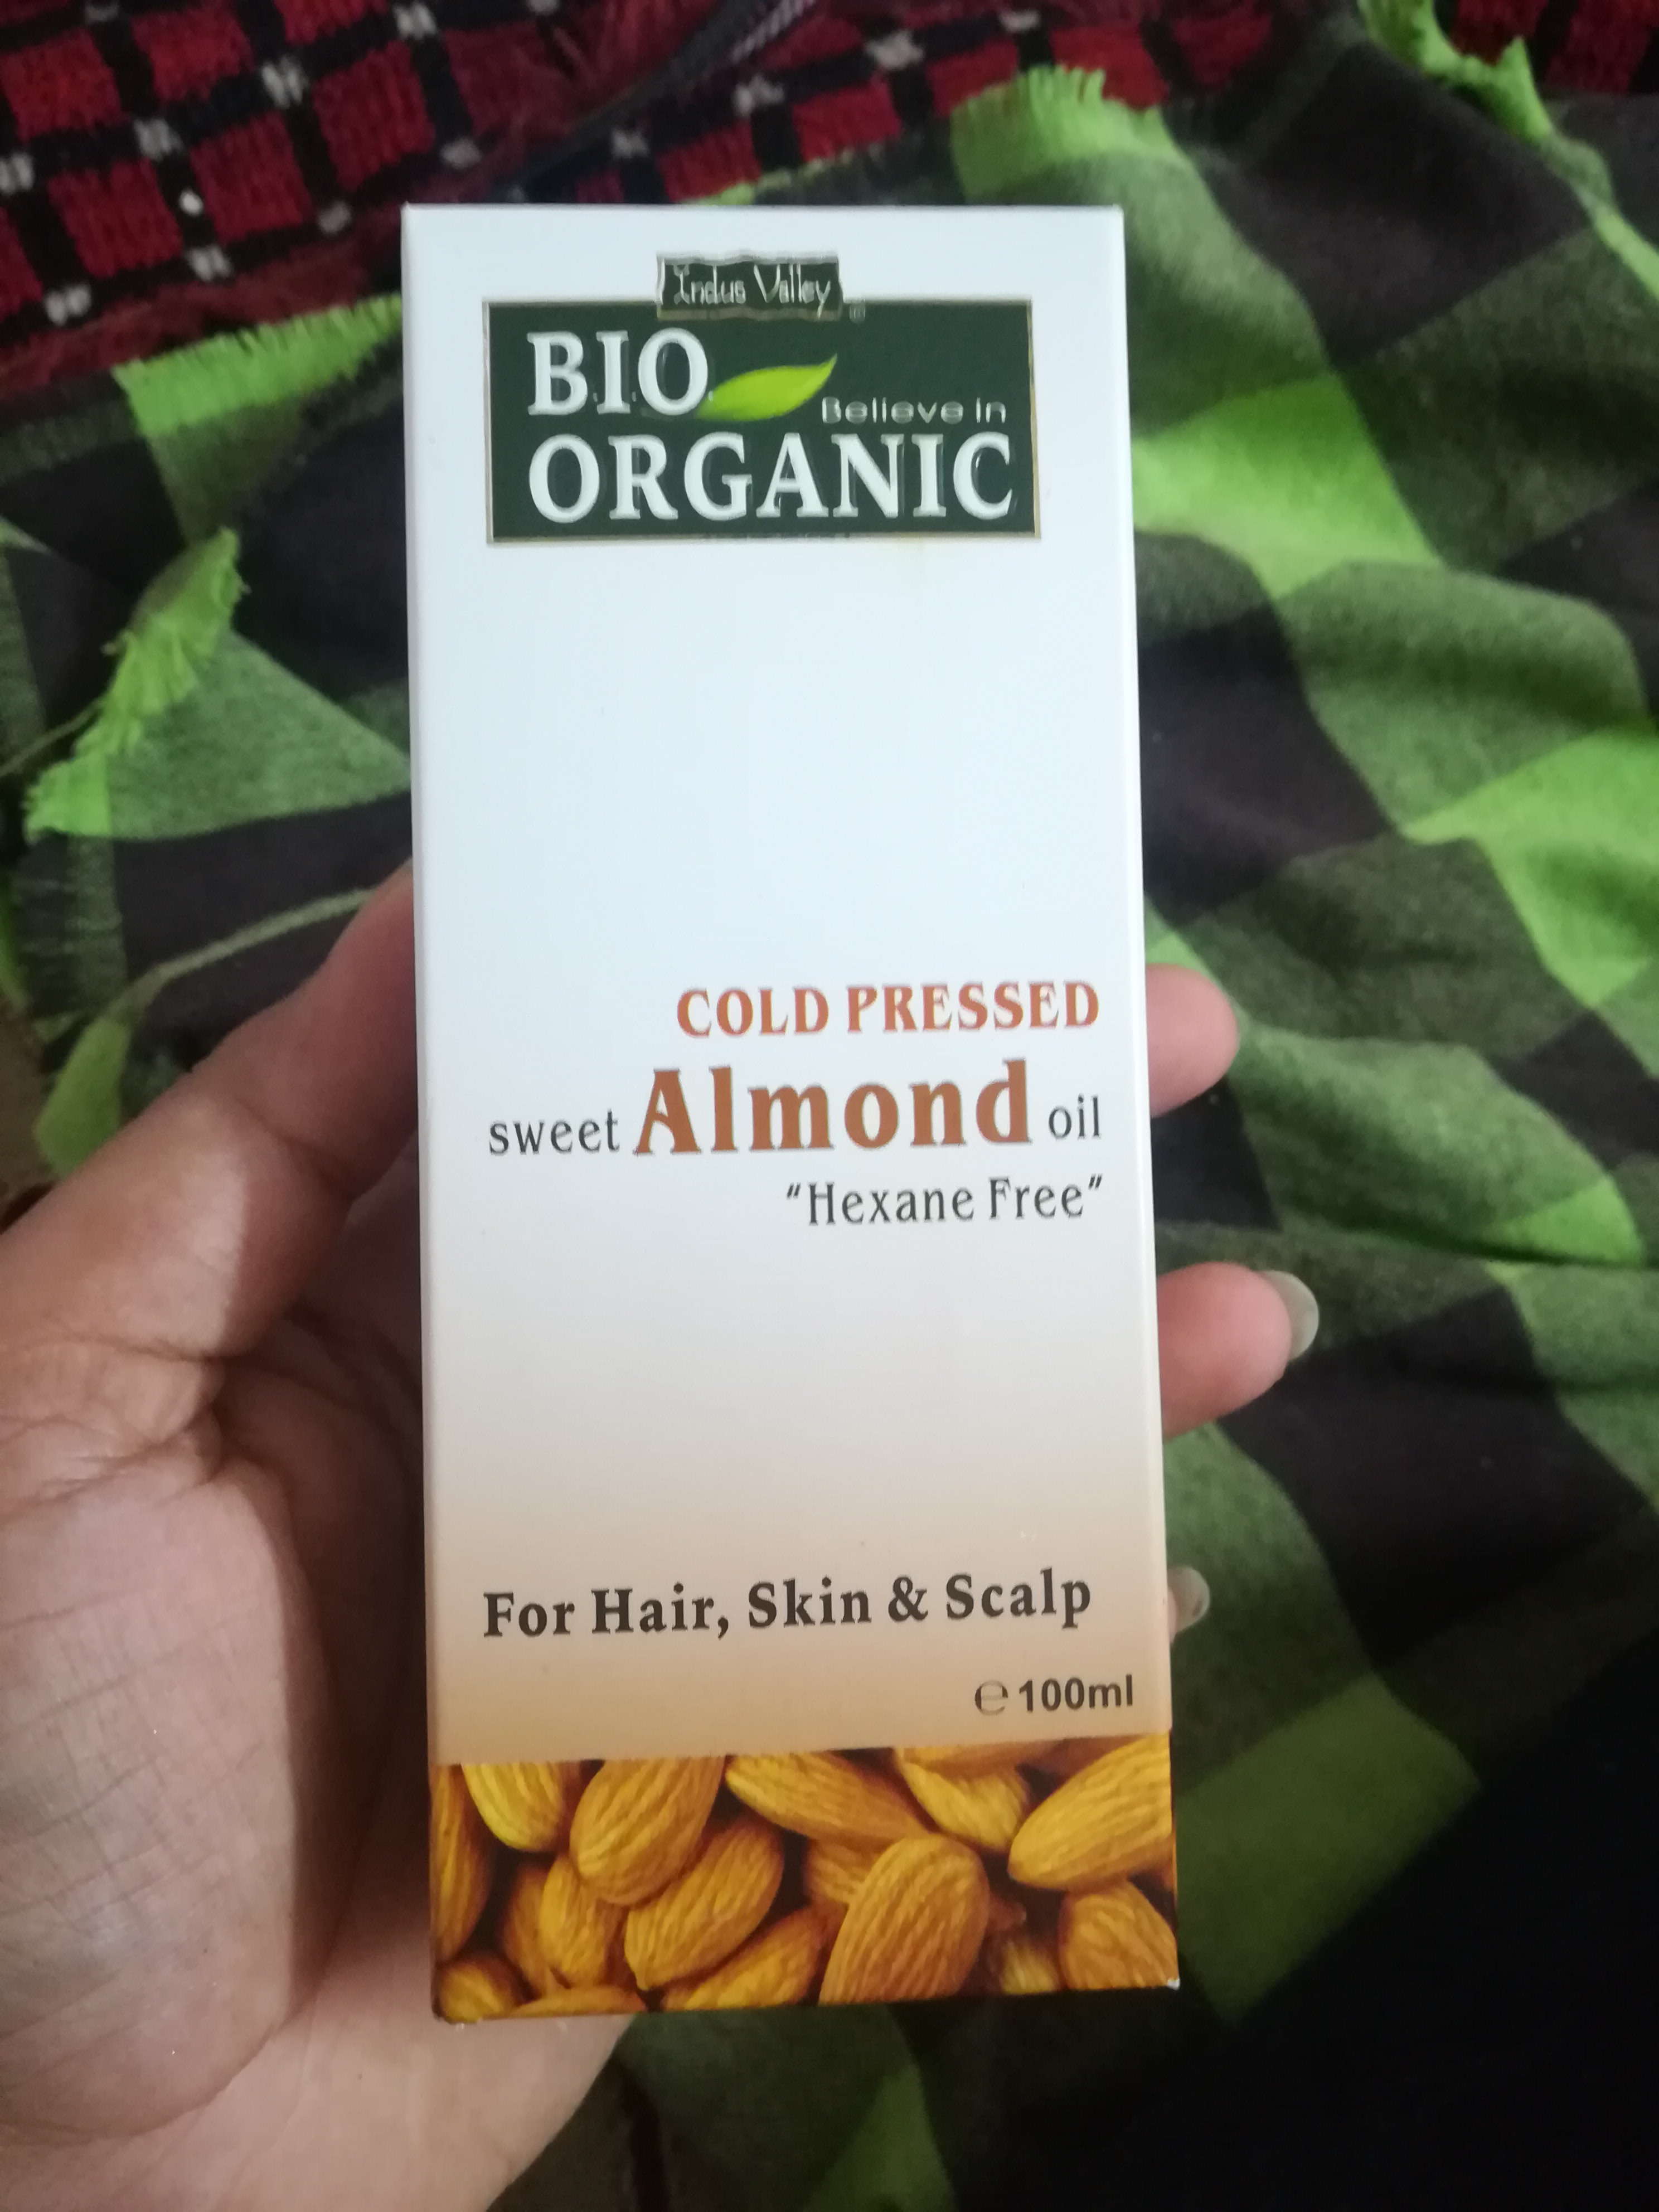 Indus Valley Cold Pressed Sweet Almond Oil-Super affordable product-By vaishnavi11